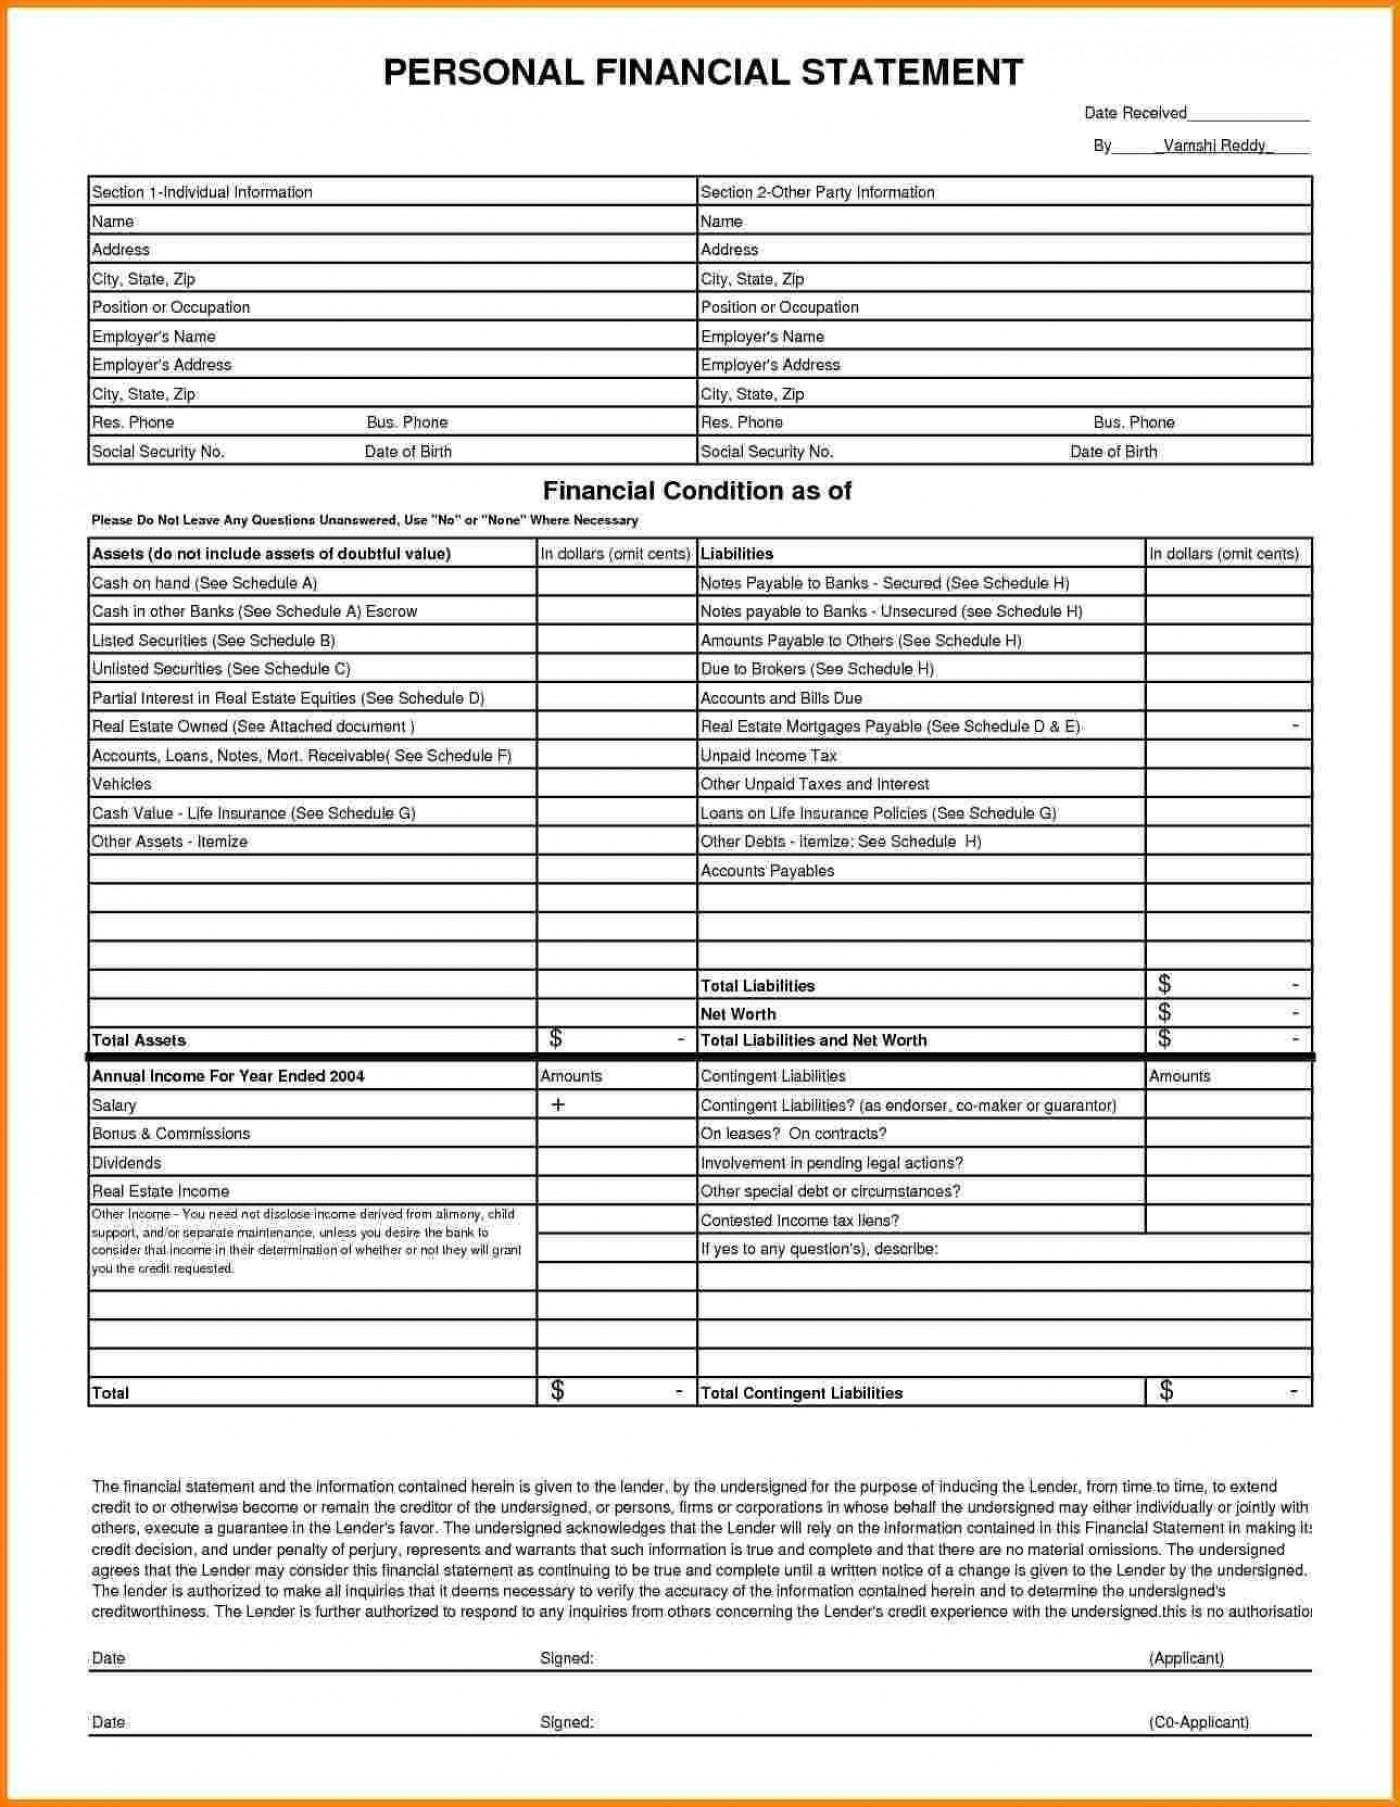 002 Marvelou Bank Statement Excel Format Free Download Image  Of Baroda Stock In India1400